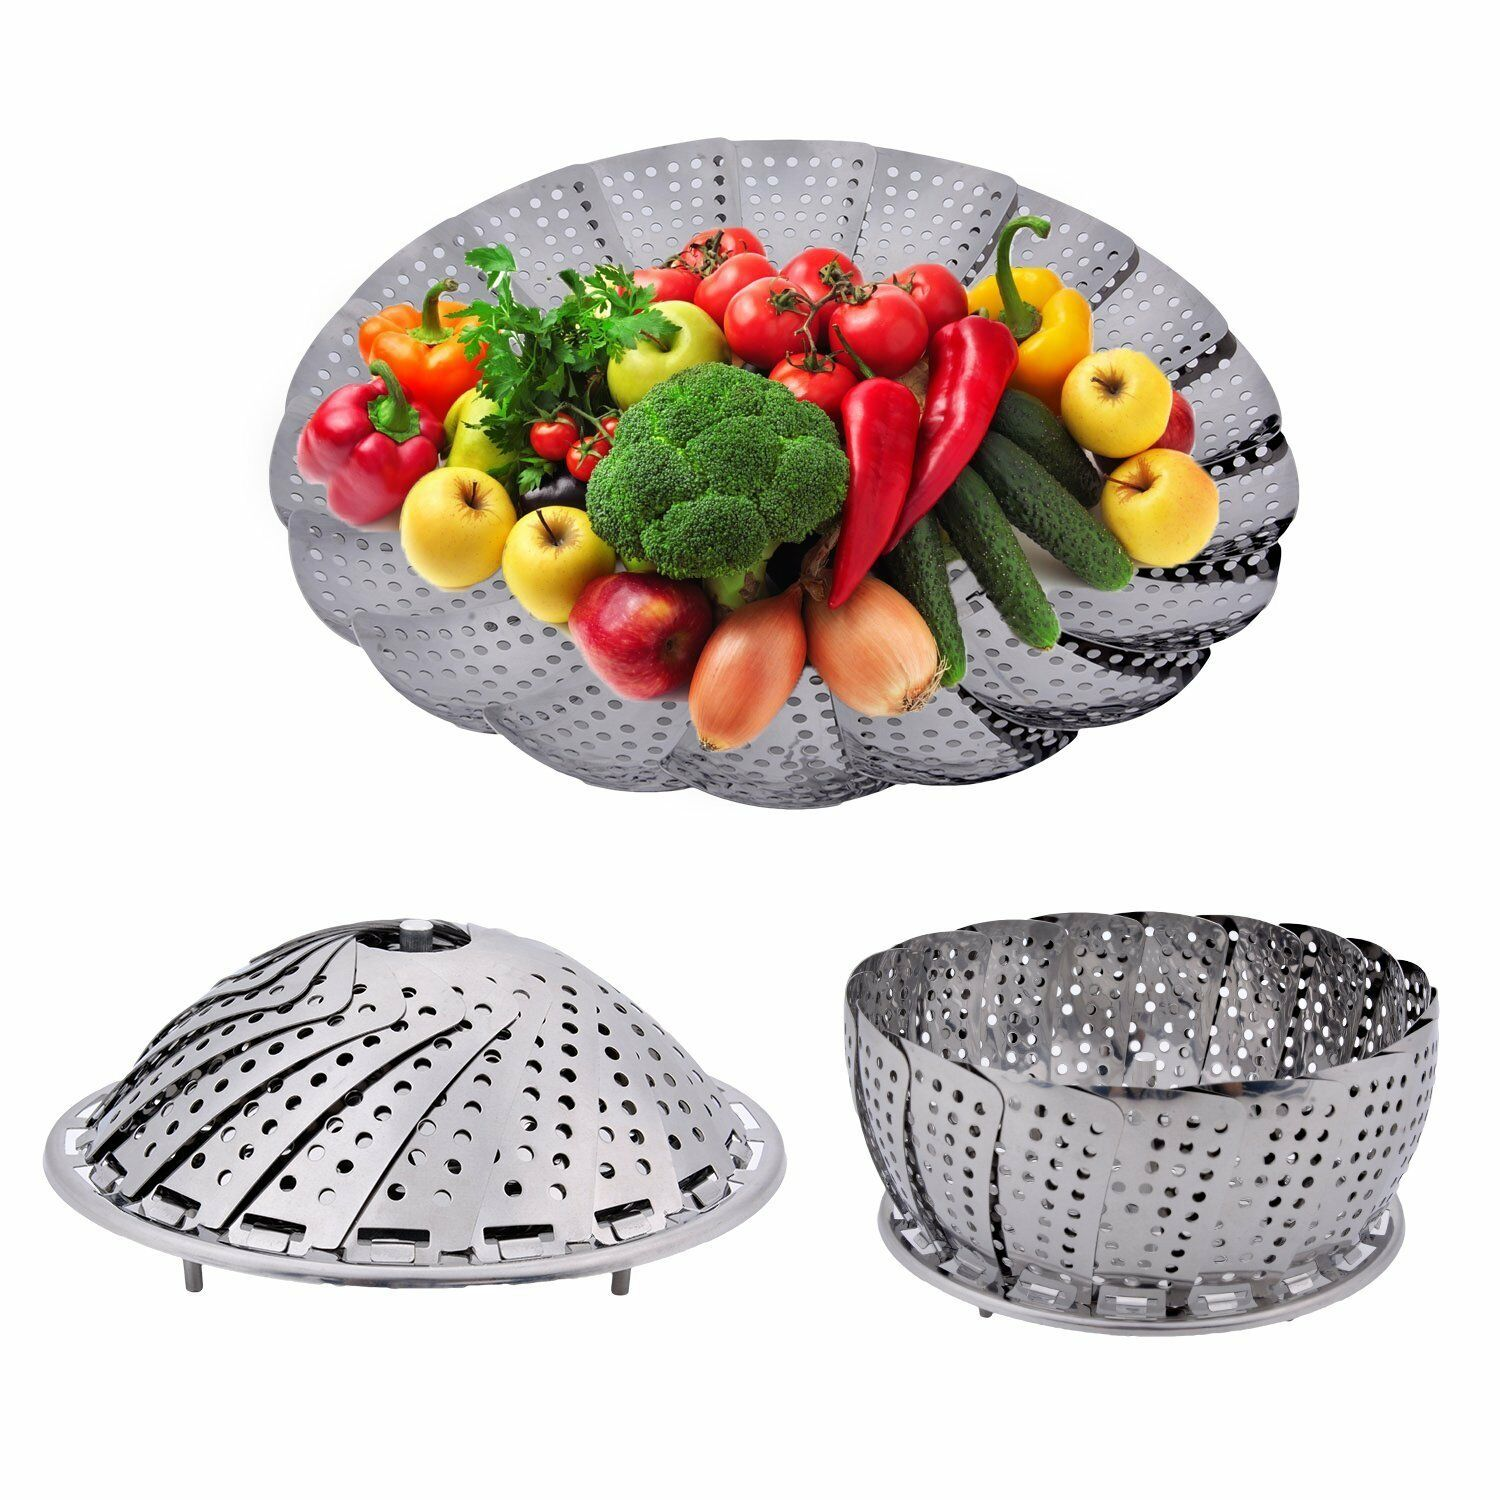 2019 New Stainless Steel Folding Steamer Steam Vegetable Basket Mesh Expandable Cooker Basket Cooker